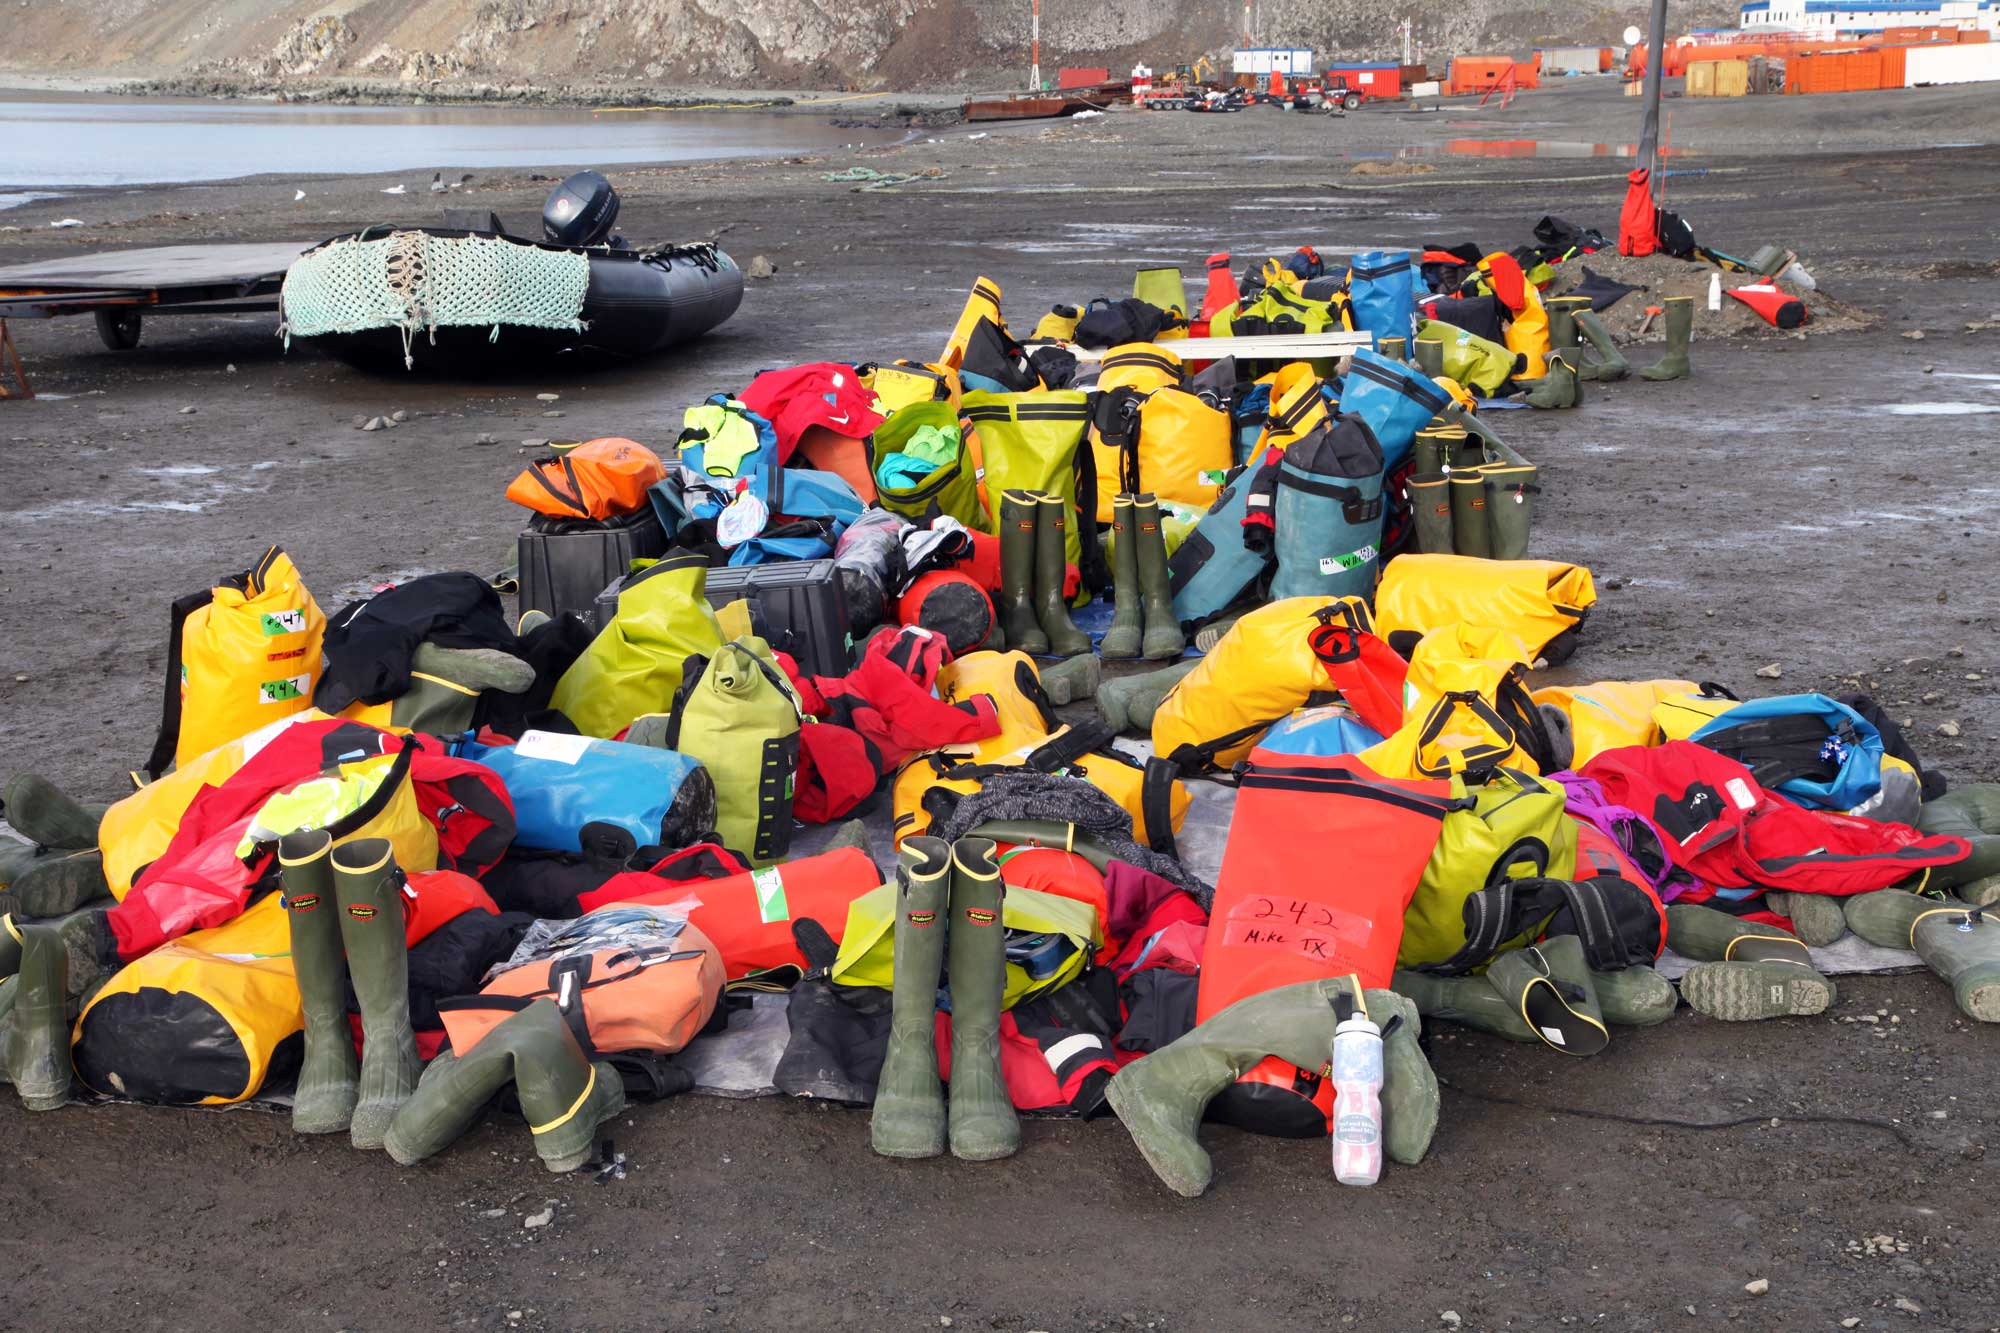 Piles of gear at the antarctica marathon starting line